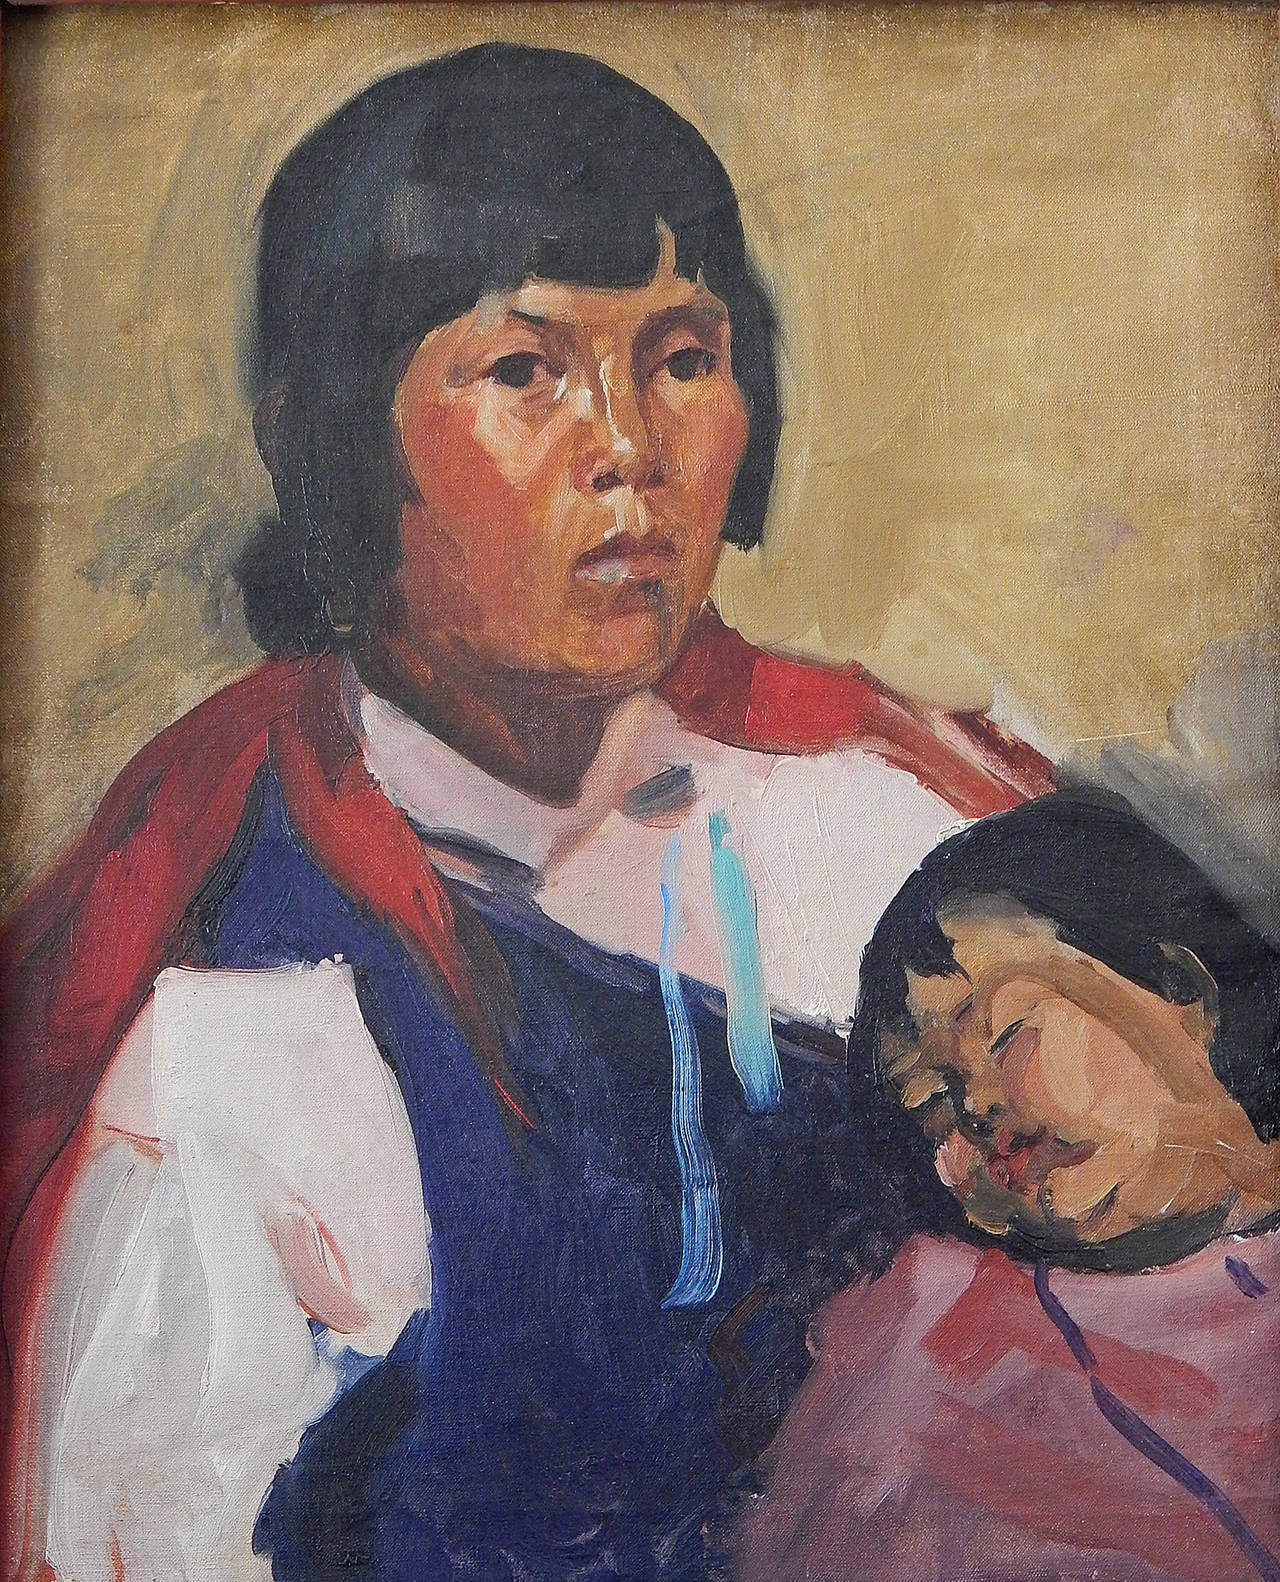 A magnificent example of her work, this portrait of a Navajo woman and her child has all the hallmarks of Martha Walter's mature work, confident and bold brushwork, vivid colors, and an ability to bring life and dignity to her subject. Walter is